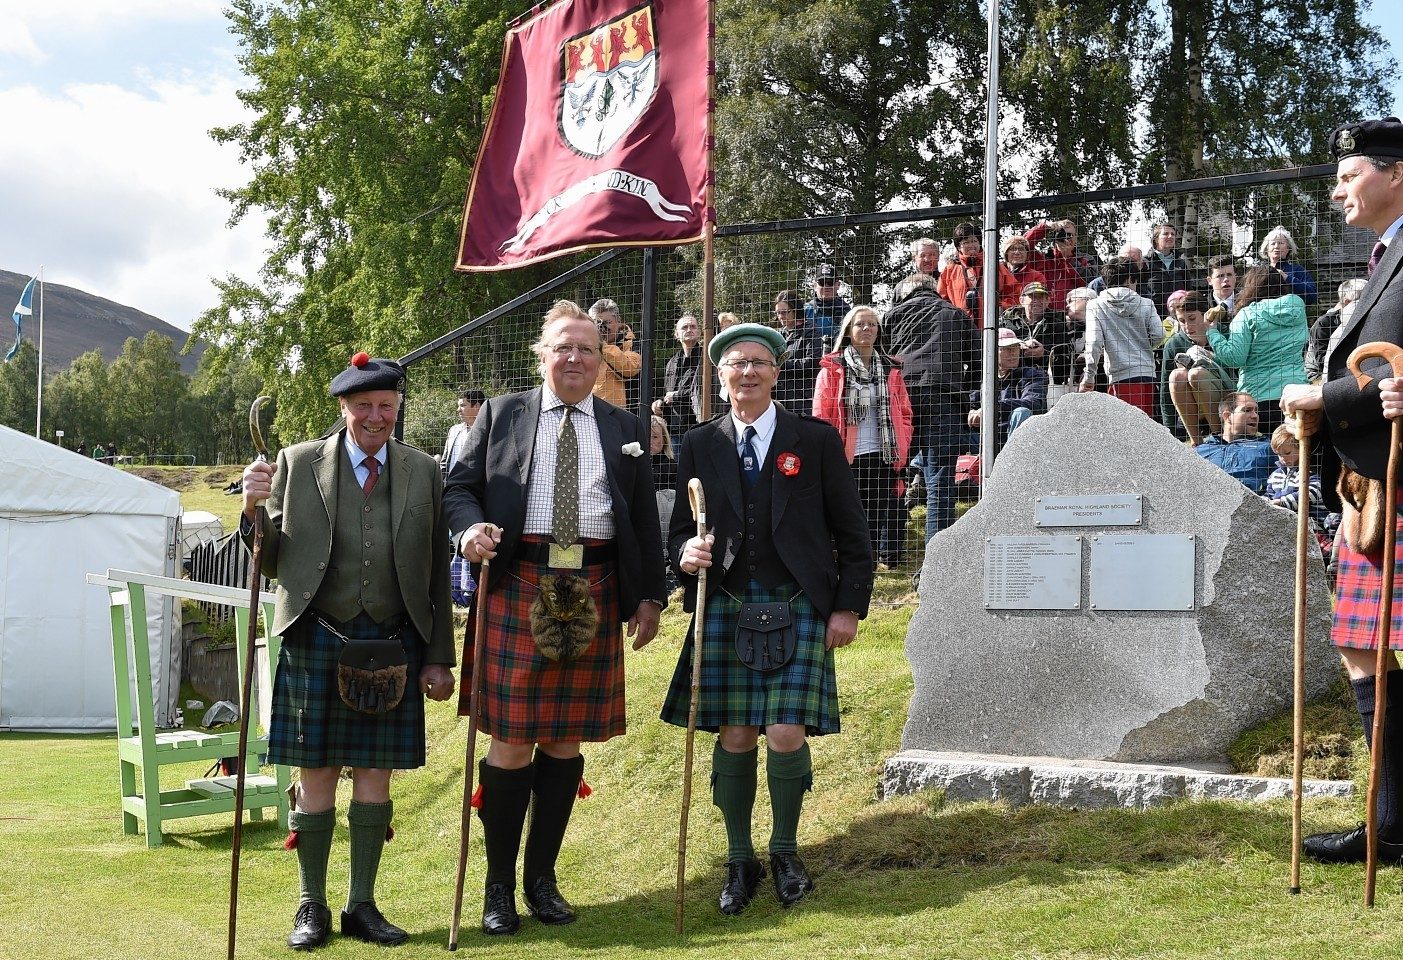 The Braemar Gathering celebrated its 200th anniversary.